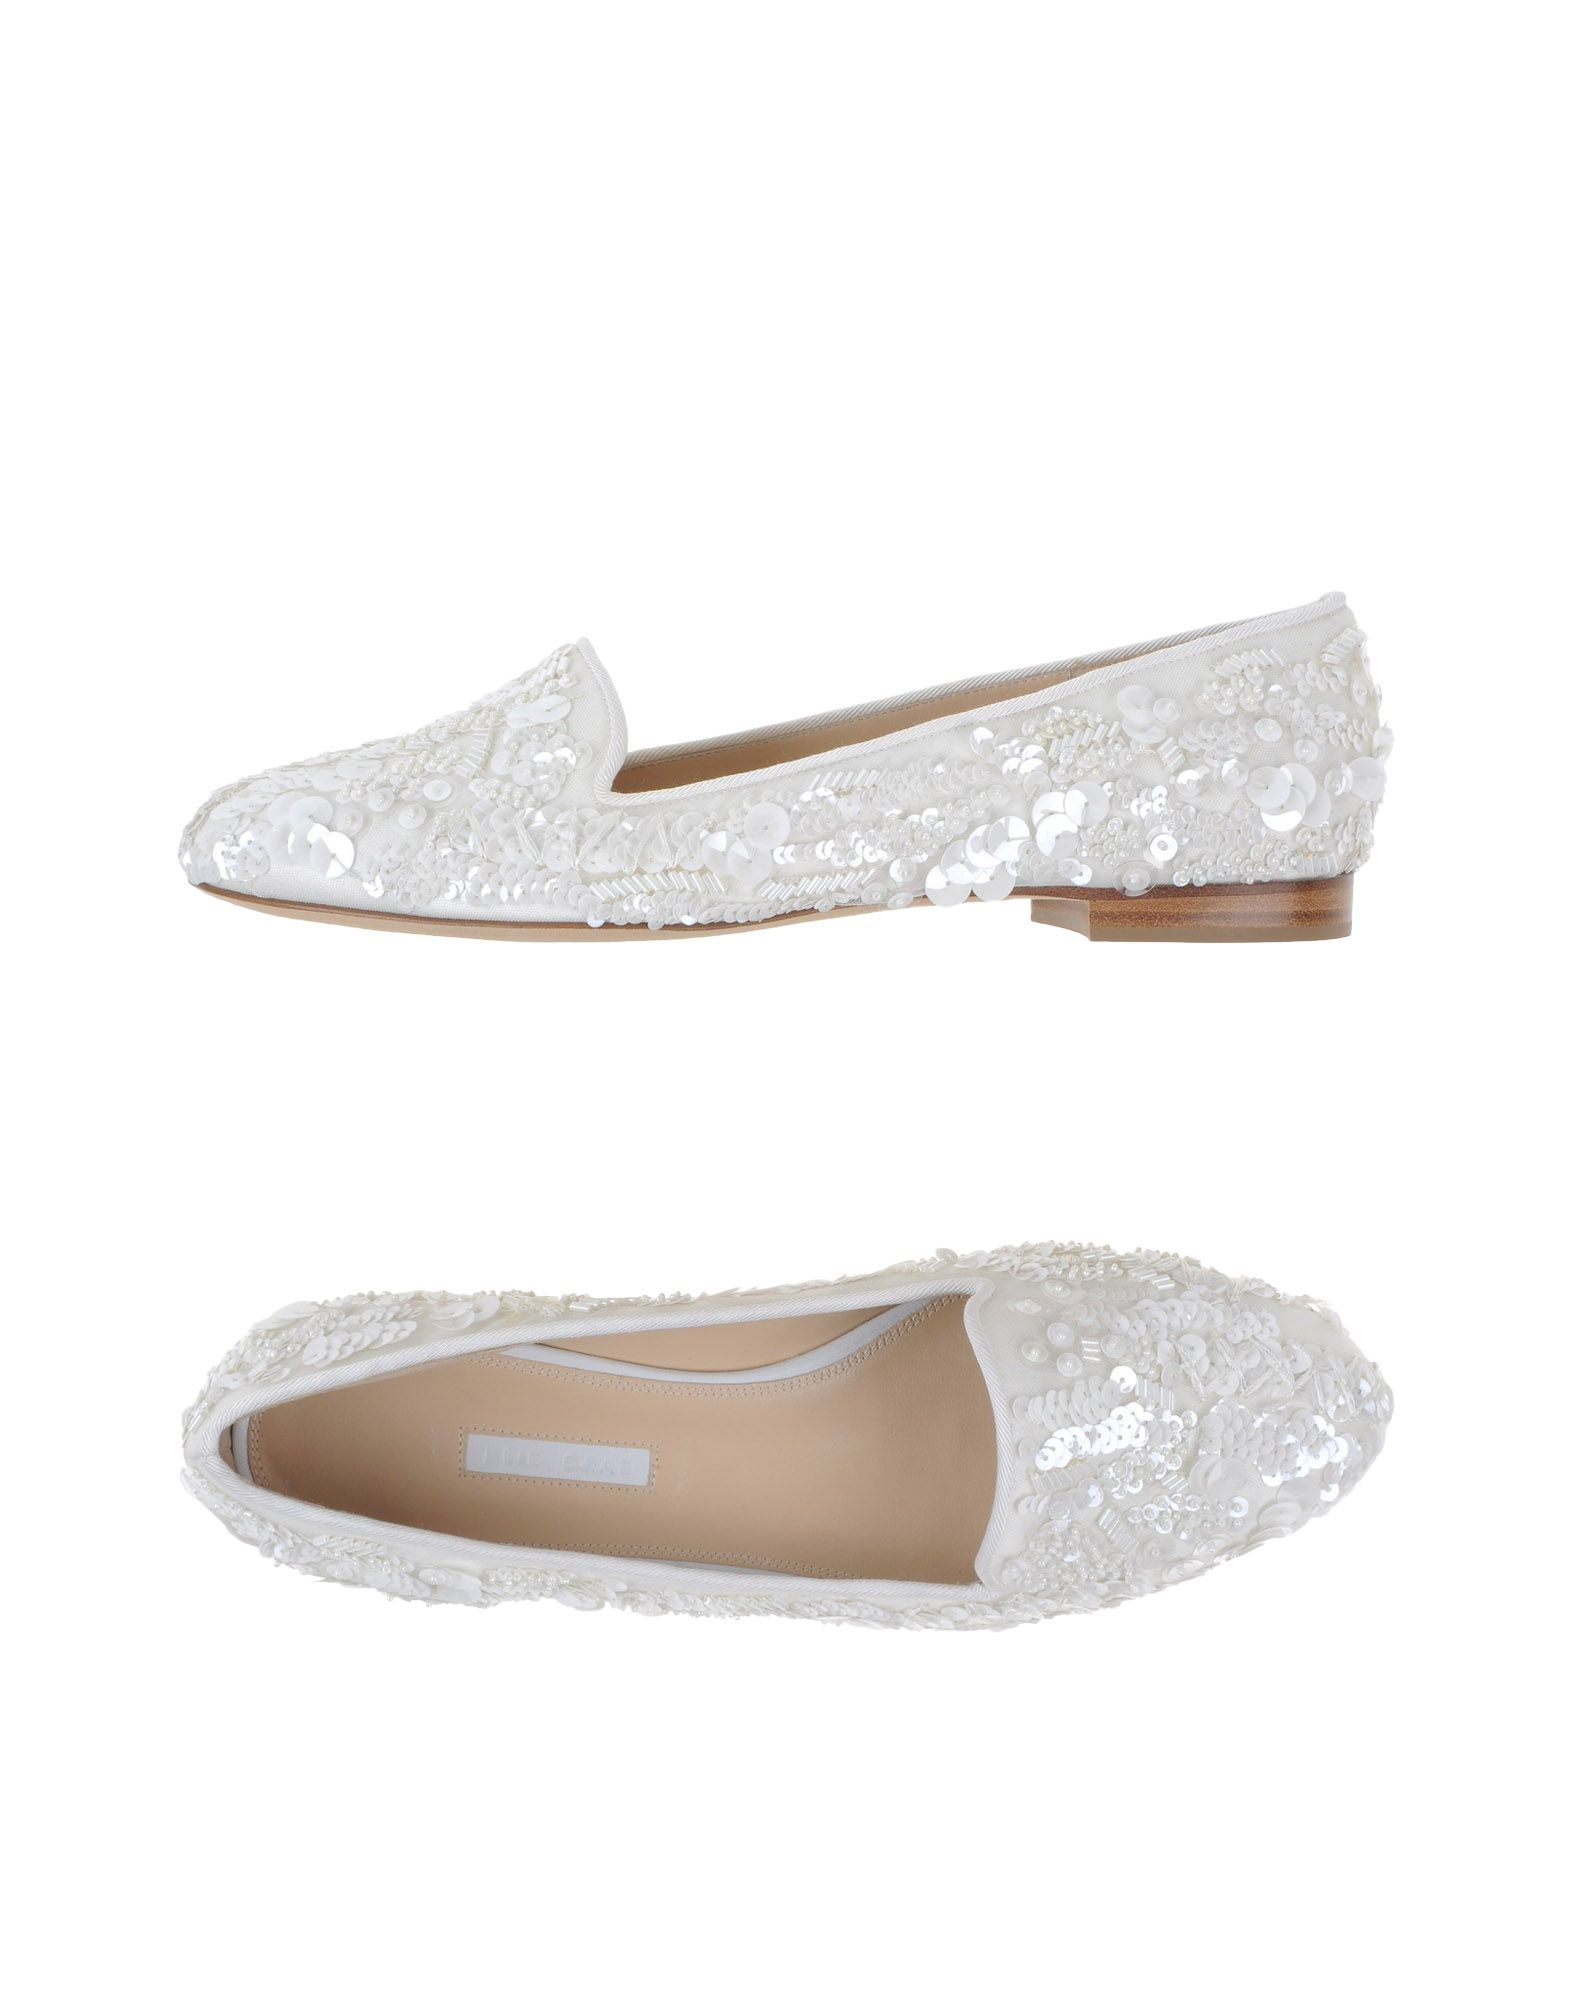 Elie saab Flat shoes PxT7t8